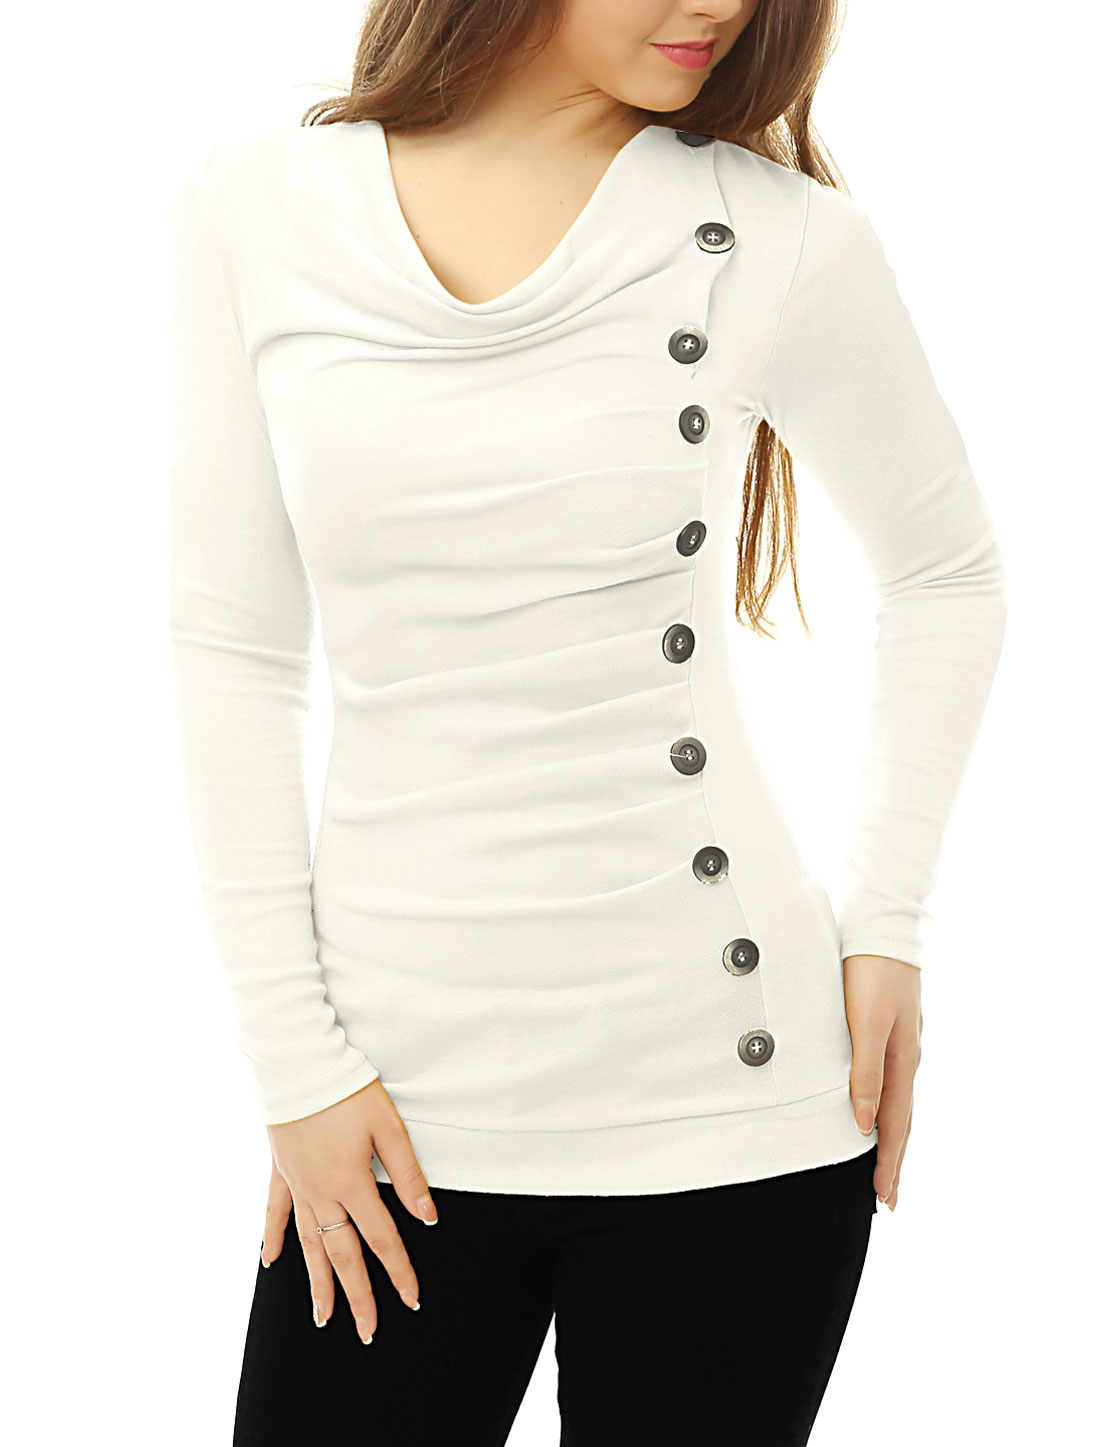 Allegra K Women Cowl Neck Long Sleeves Buttons Decor Ruched Top White XL